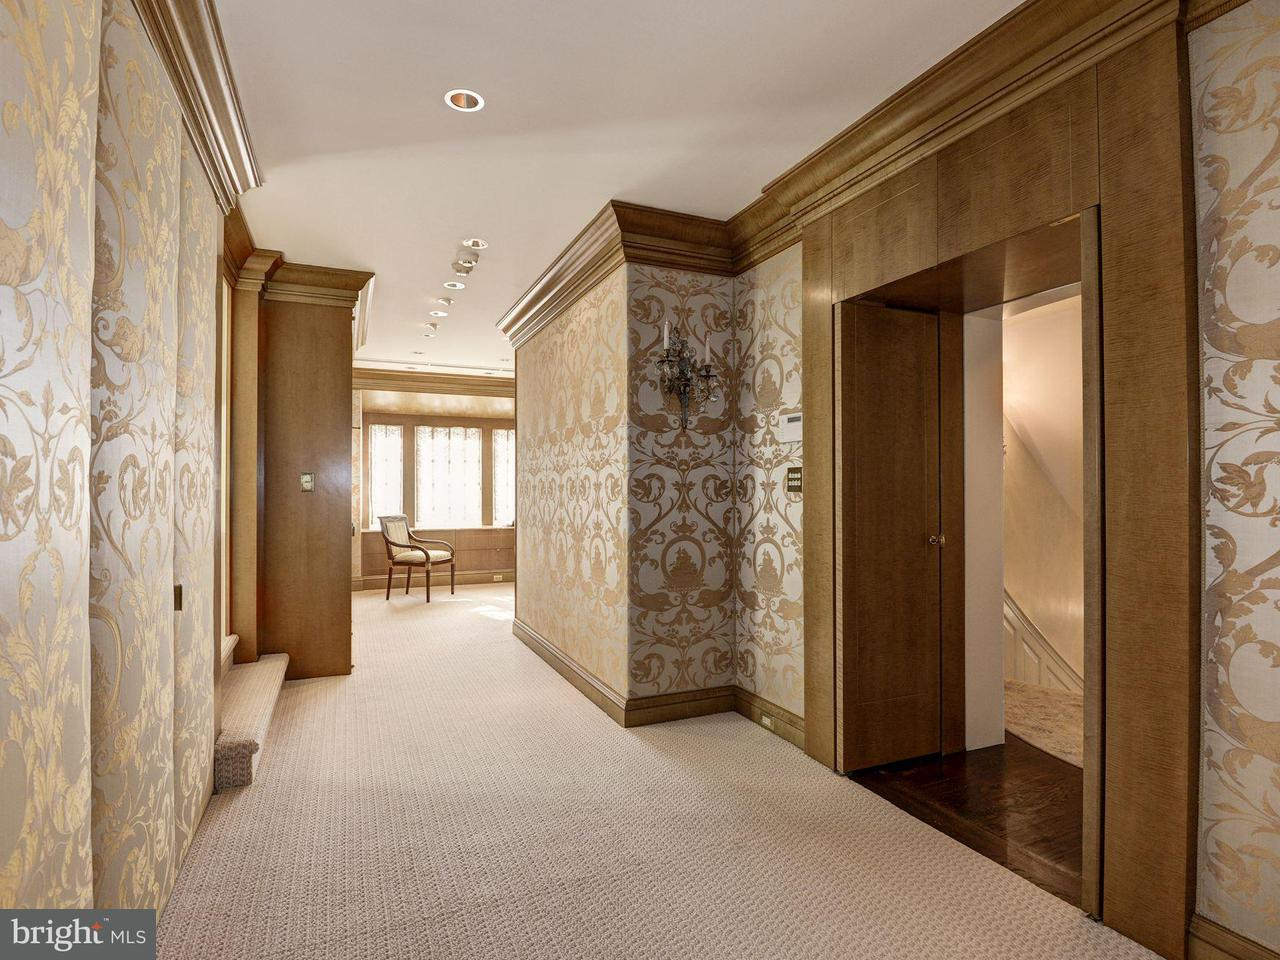 Additional photo for property listing at 3005 45th St NW  Washington, District Of Columbia 20016 United States